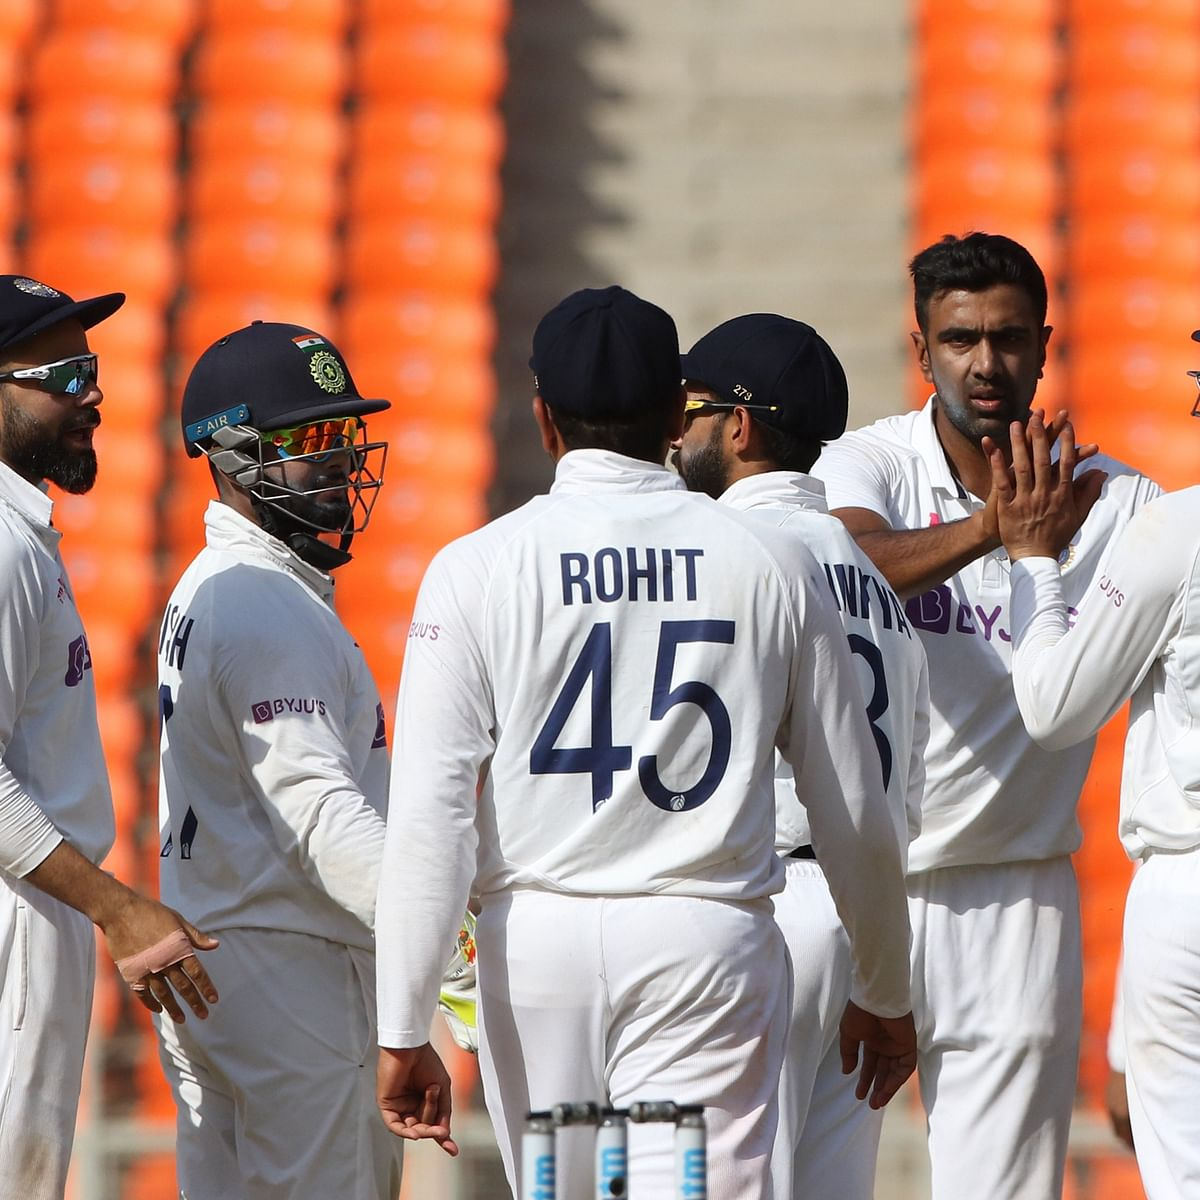 India to face New Zealand at World Test Championship final at Lord's on June 18